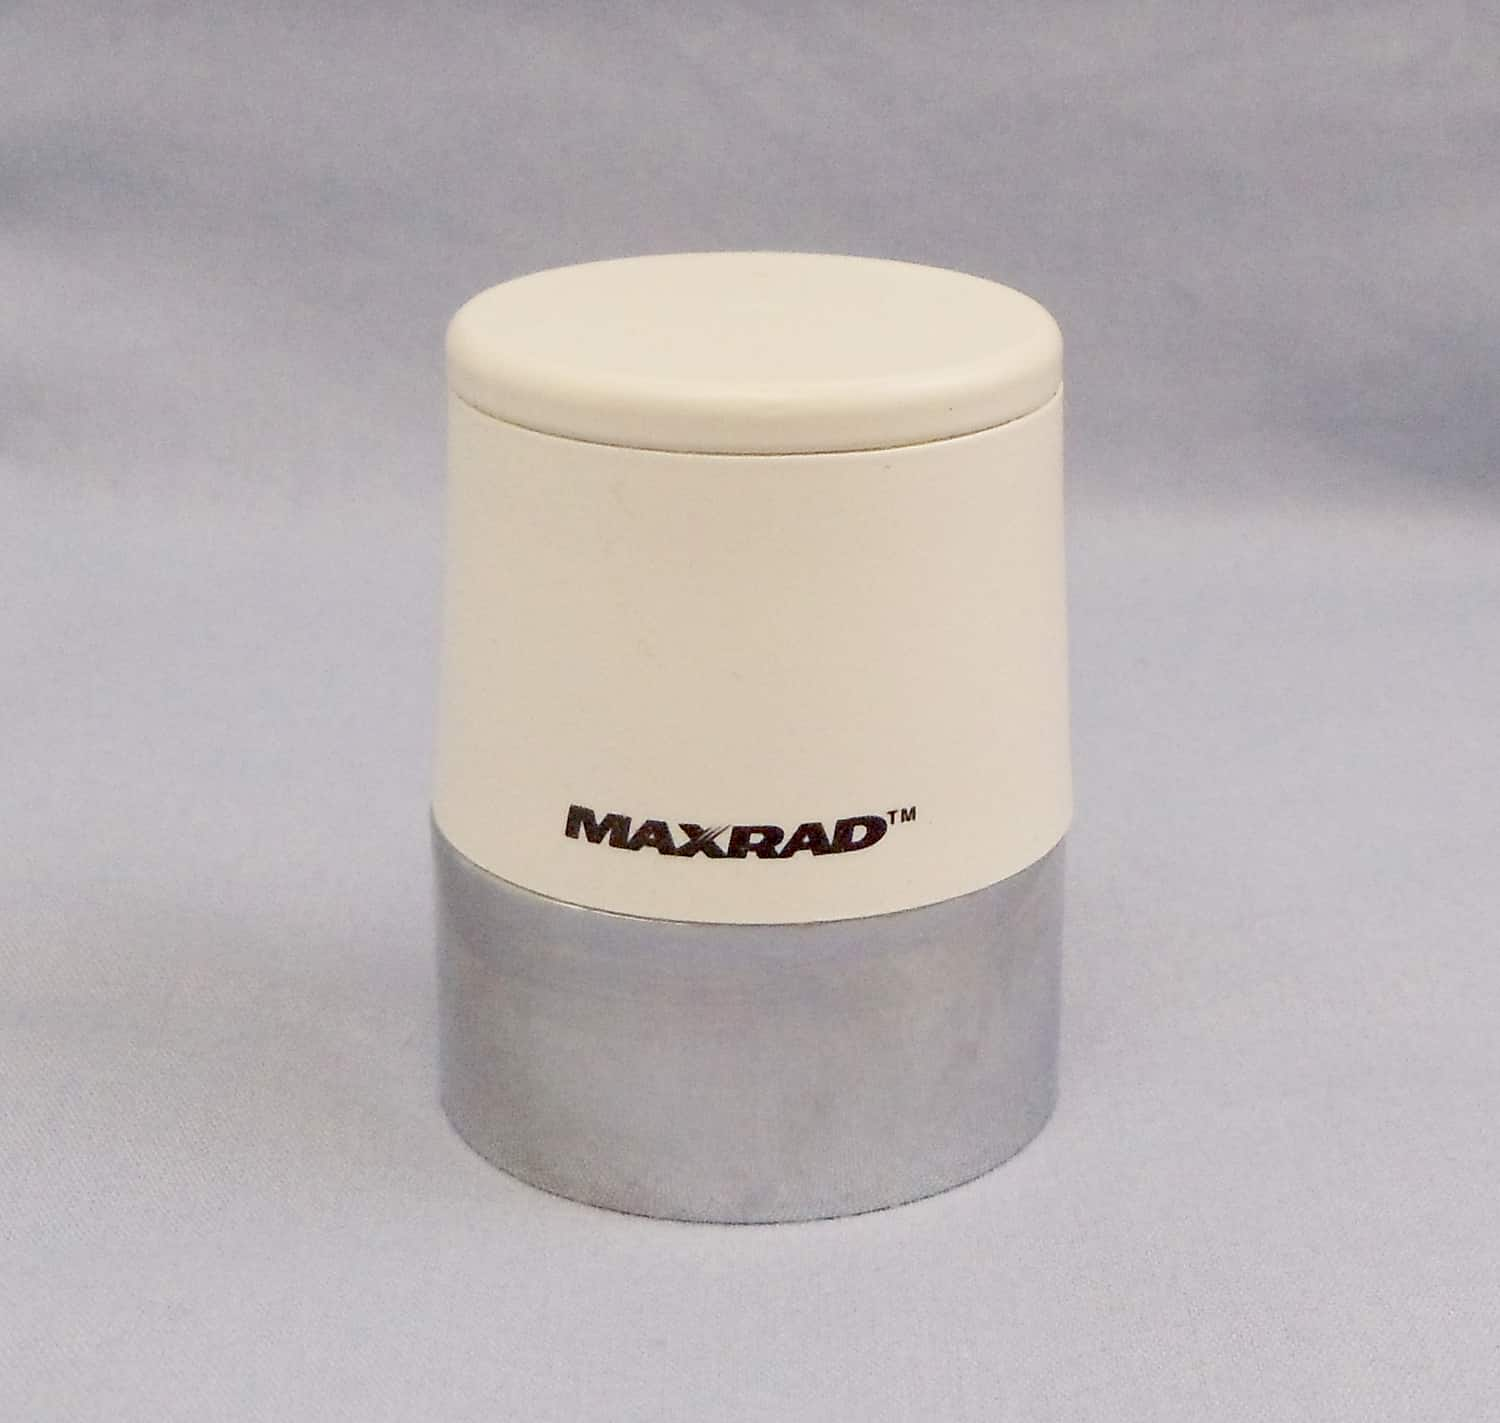 WMLPV1700 - Maxrad Low Profile 1700-2500 MHz Antenna